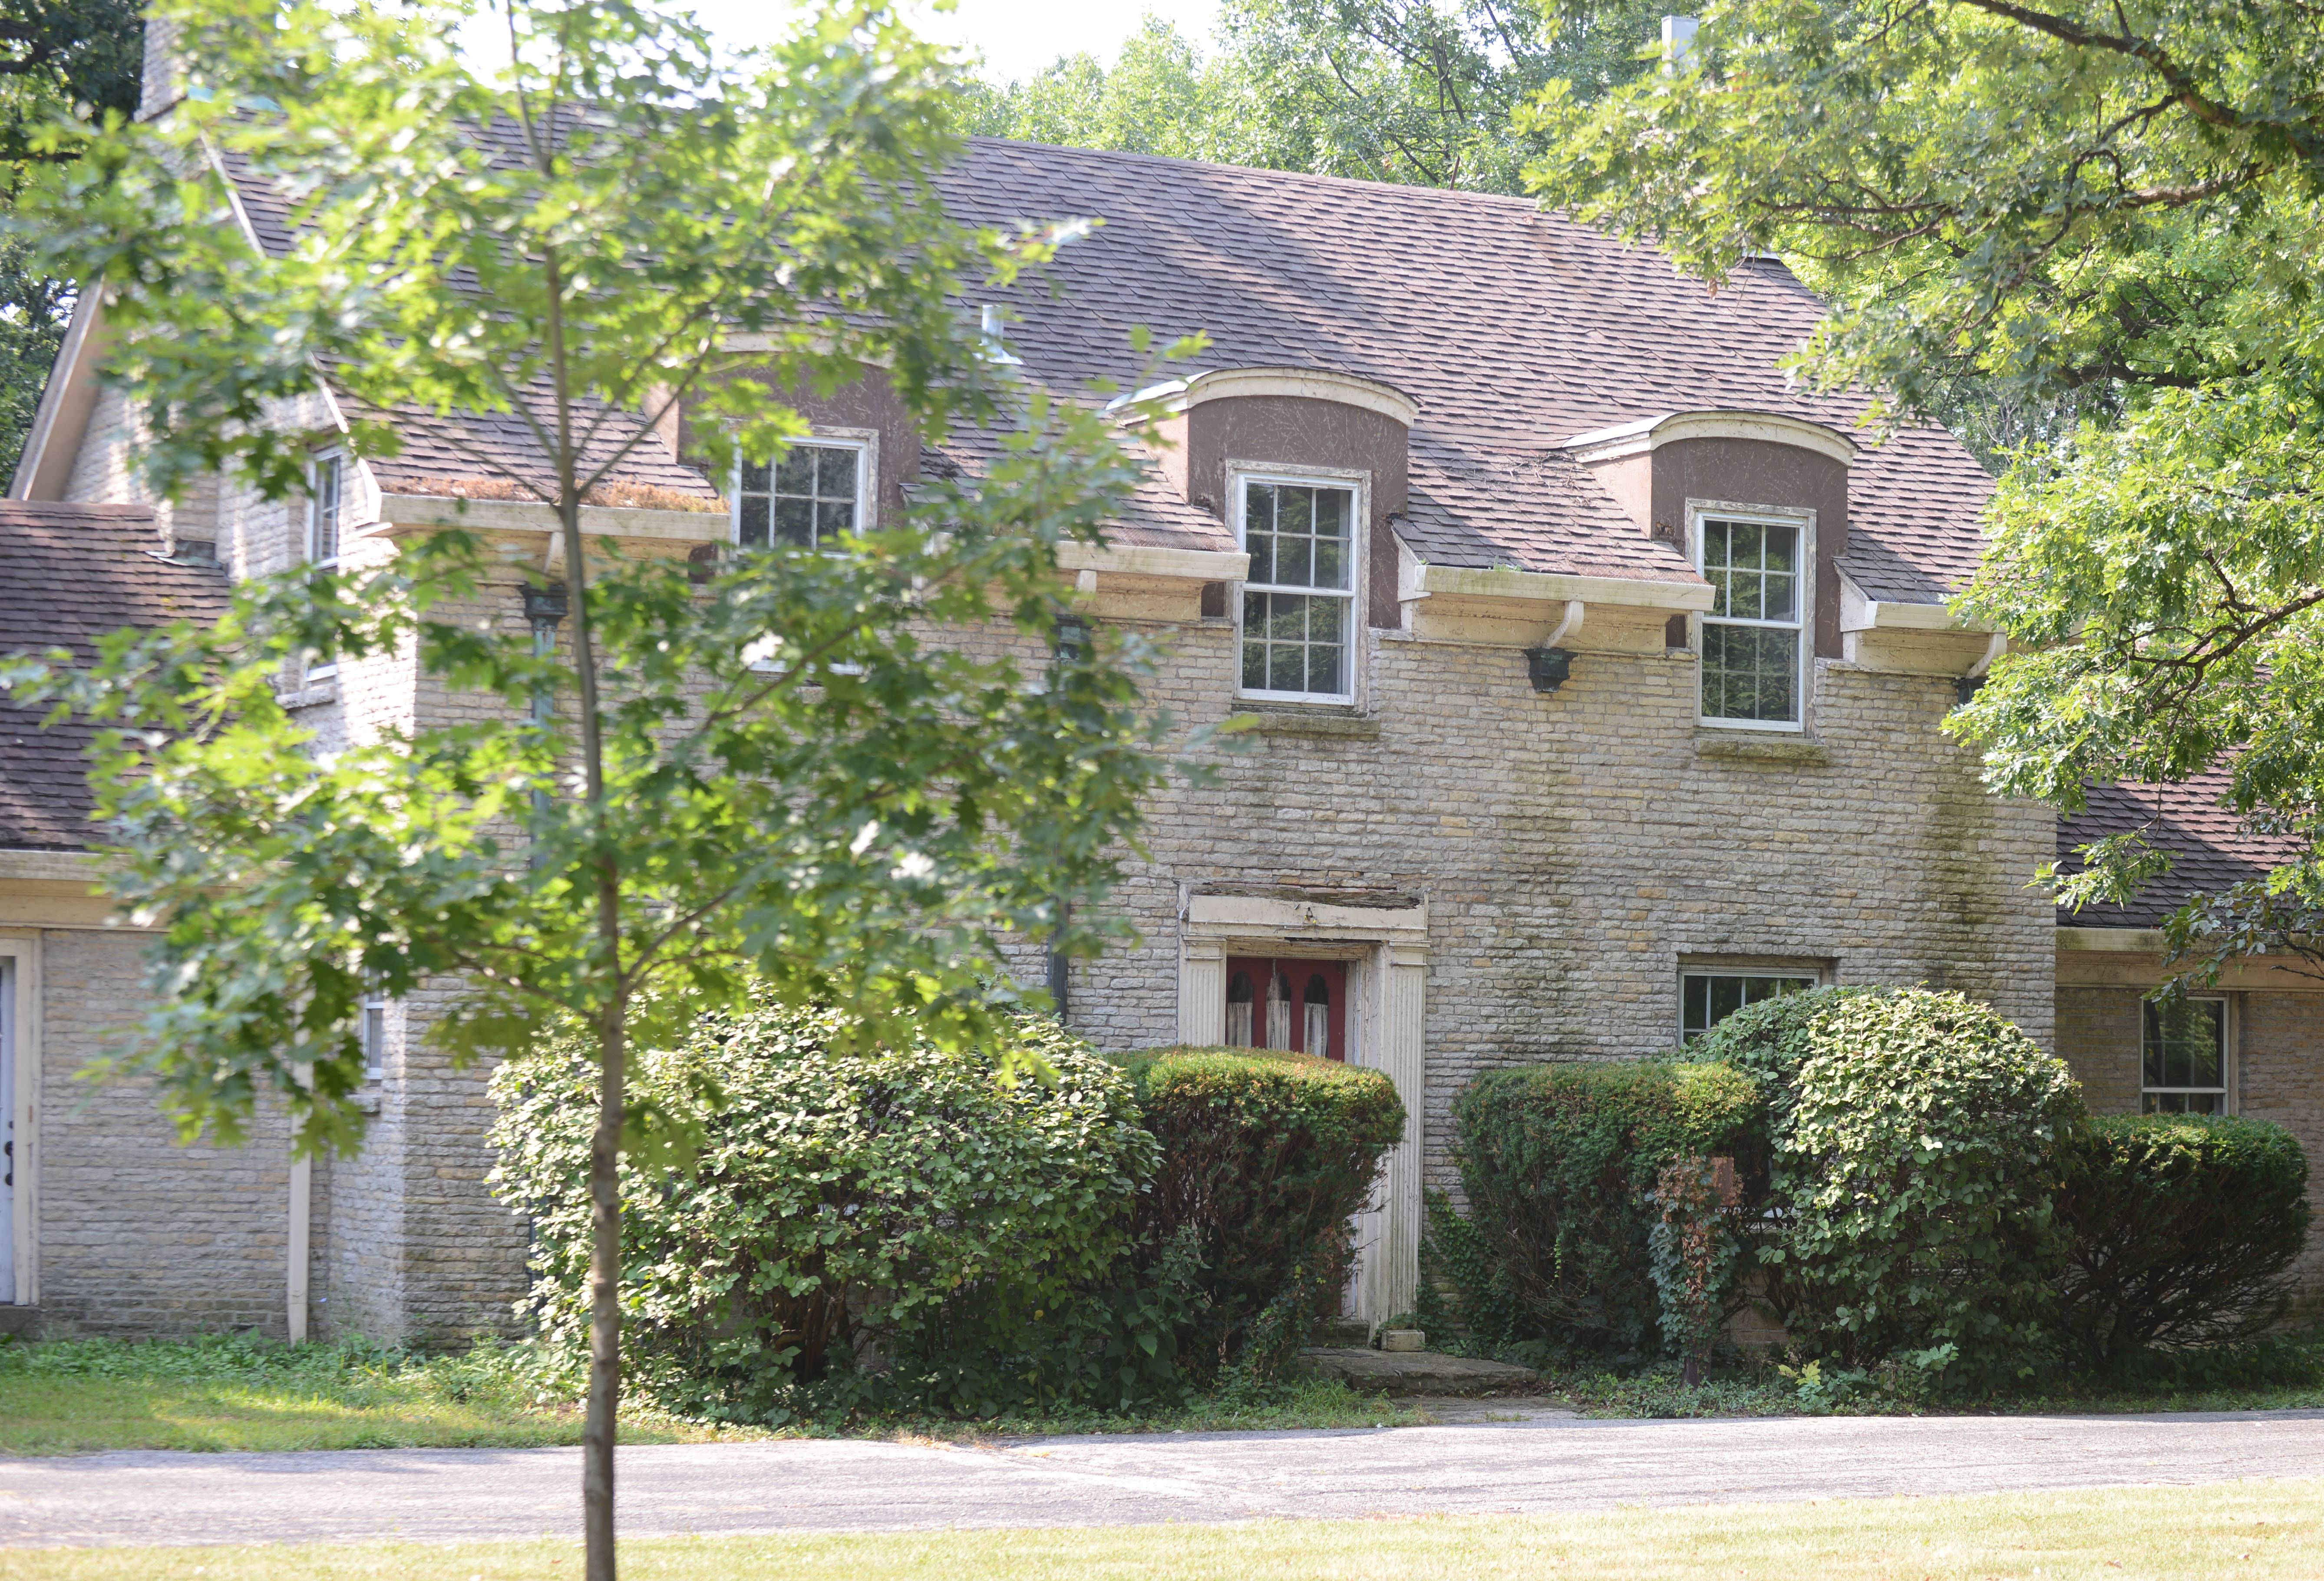 The DuPage County Forest Preserve District is planning to replace its policy for dealing with historic buildings such as the McKee House at Churchill Woods Forest Preserve near Glen Ellyn.